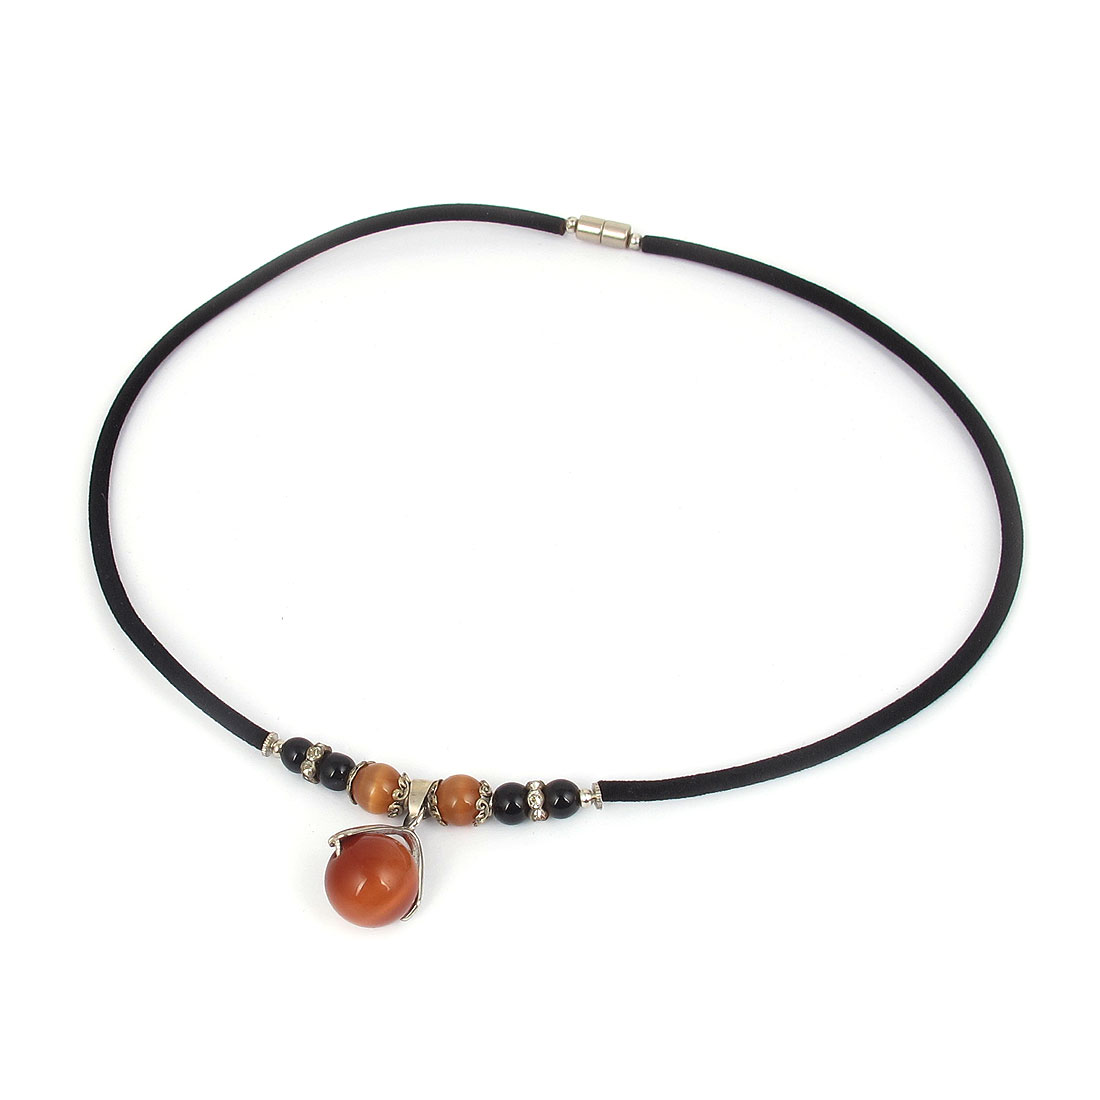 14mm OD Round Opal Bead Pendant Neck Ornament Necklace Black Orange for Women